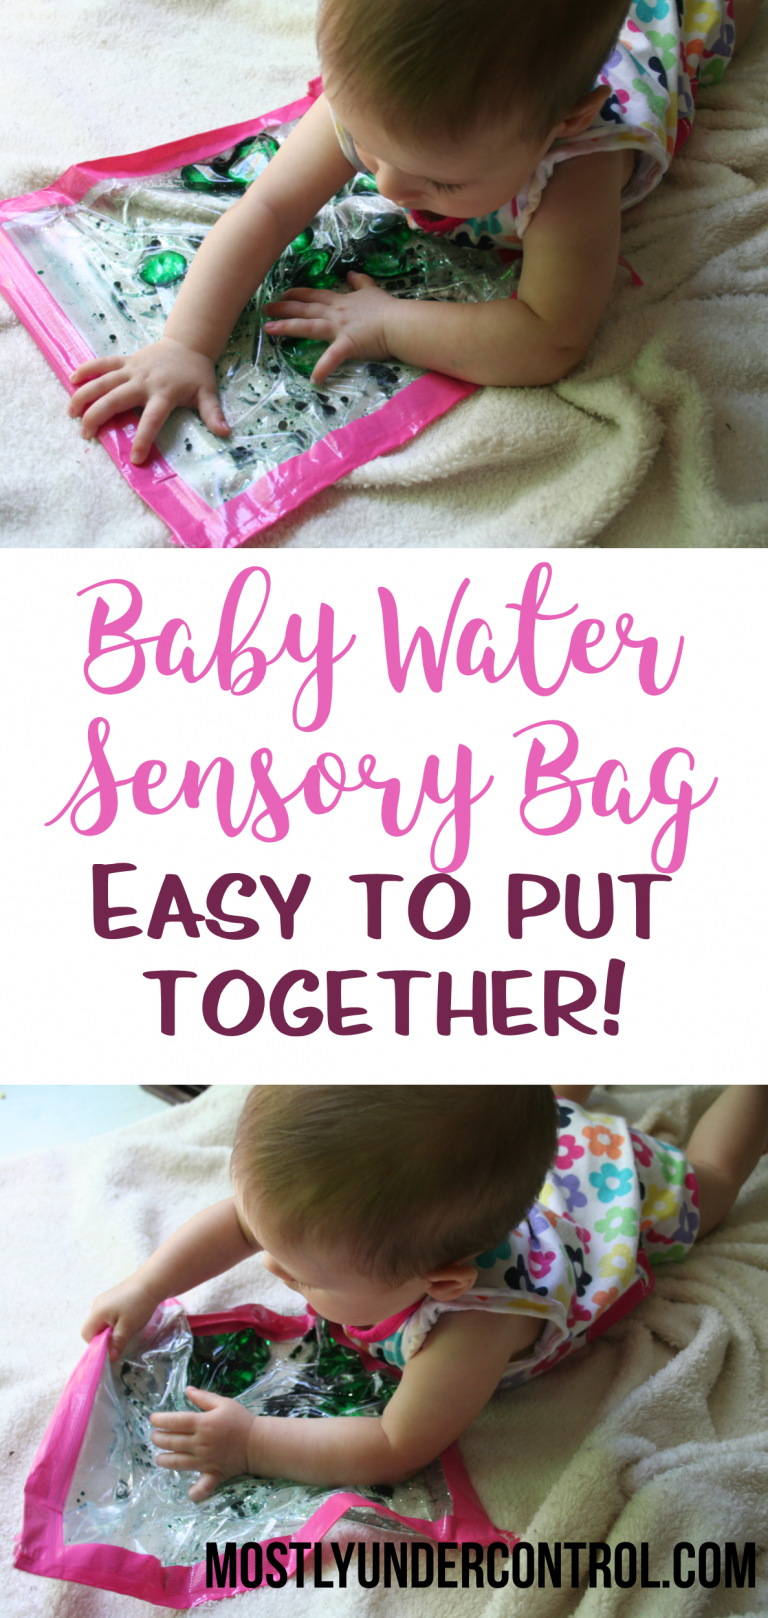 Baby sensory water bag - so easy to put together!